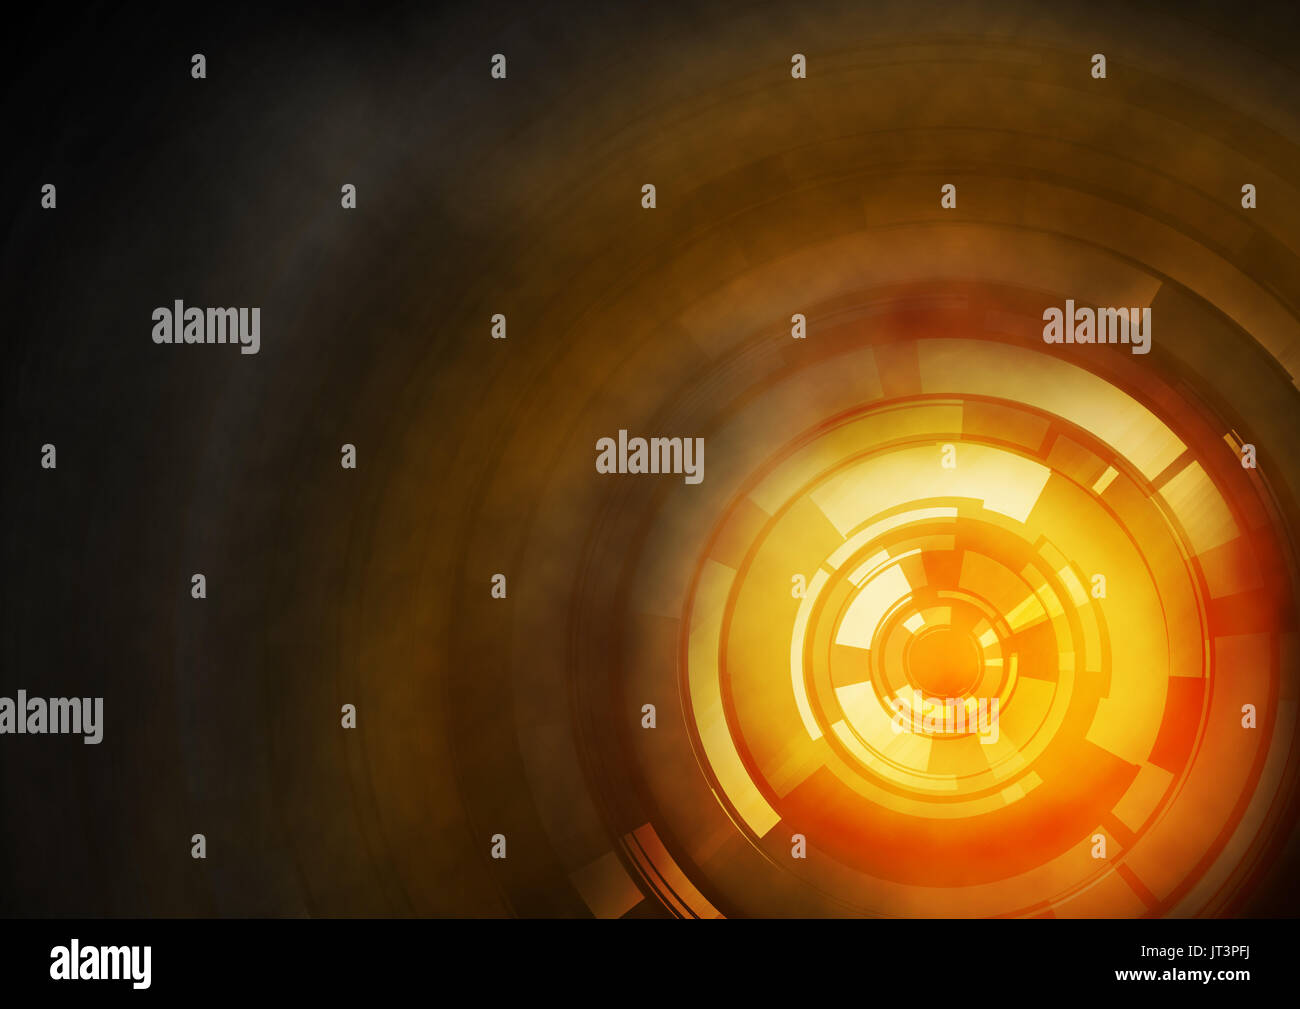 Orange abstract background with light circle looks like a target. - Stock Image